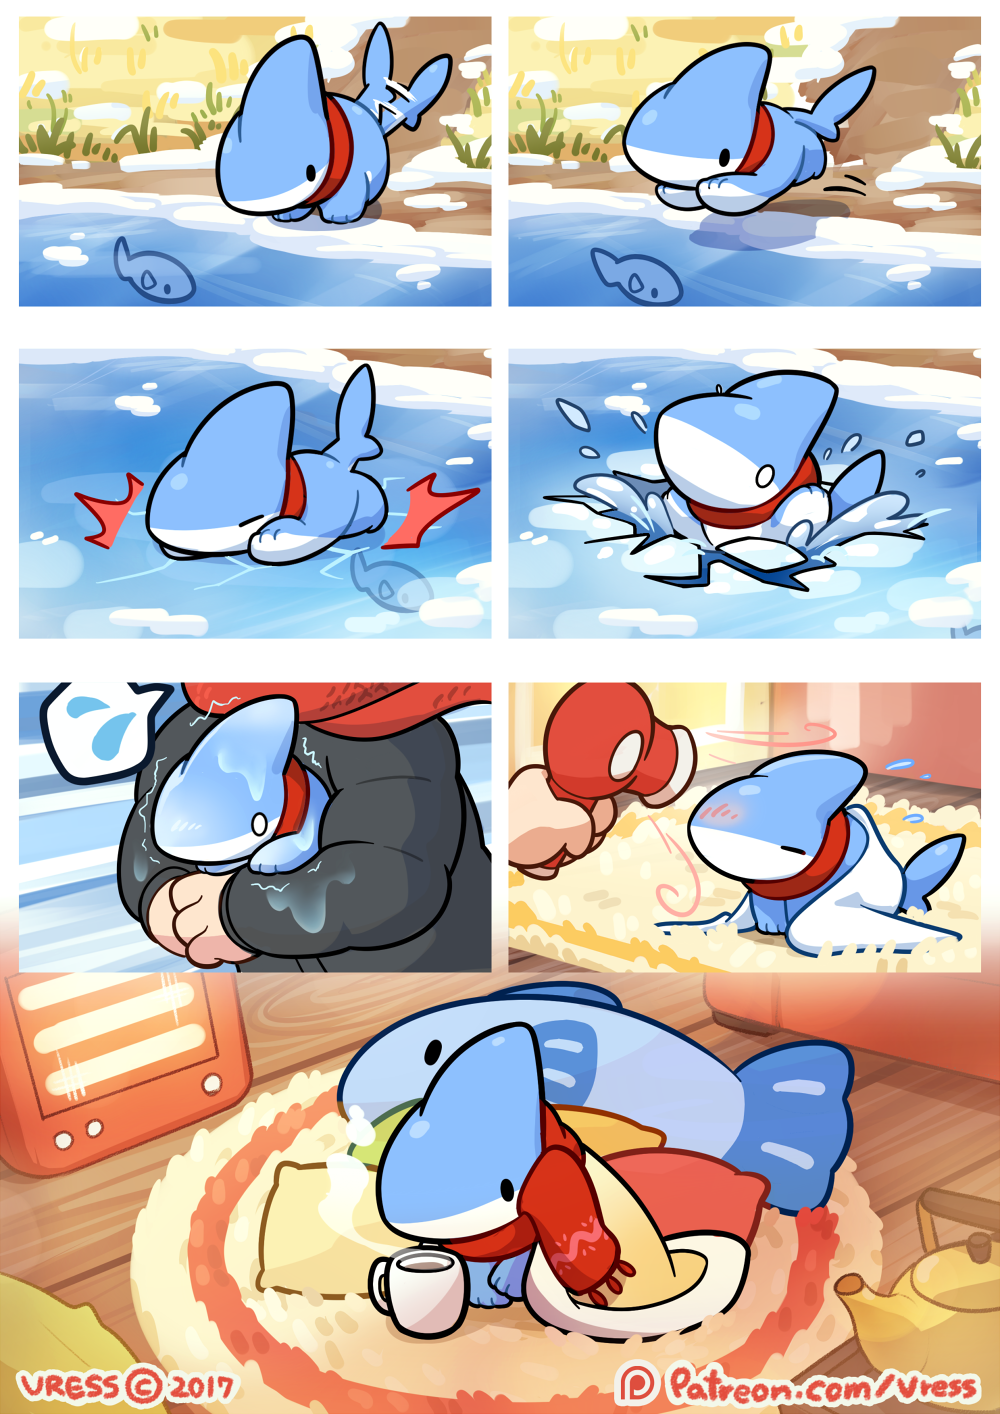 e926 2017 bedding beverage blanket chibi collar comic cute fish hairdryer hi_res human ice mammal marine outside pet pillow scarf shark shark_puppy snow tailwag tea_kettle towel vress_(artist) vress_(character) water winter